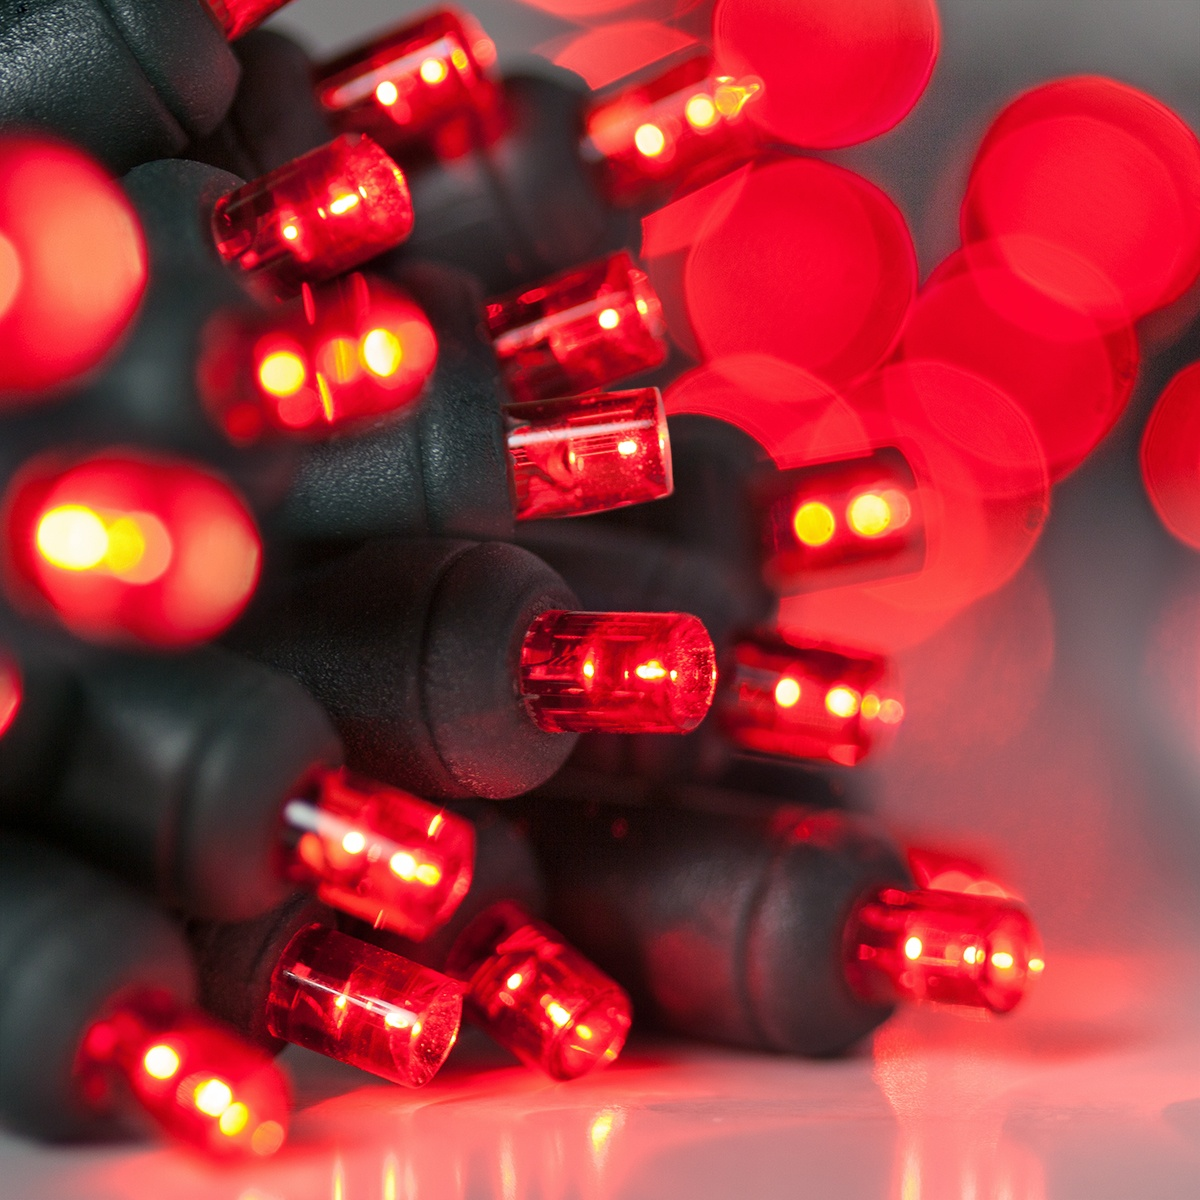 Superb 20 Red Battery Operated 5mm LED Christmas Lights, Green Wire